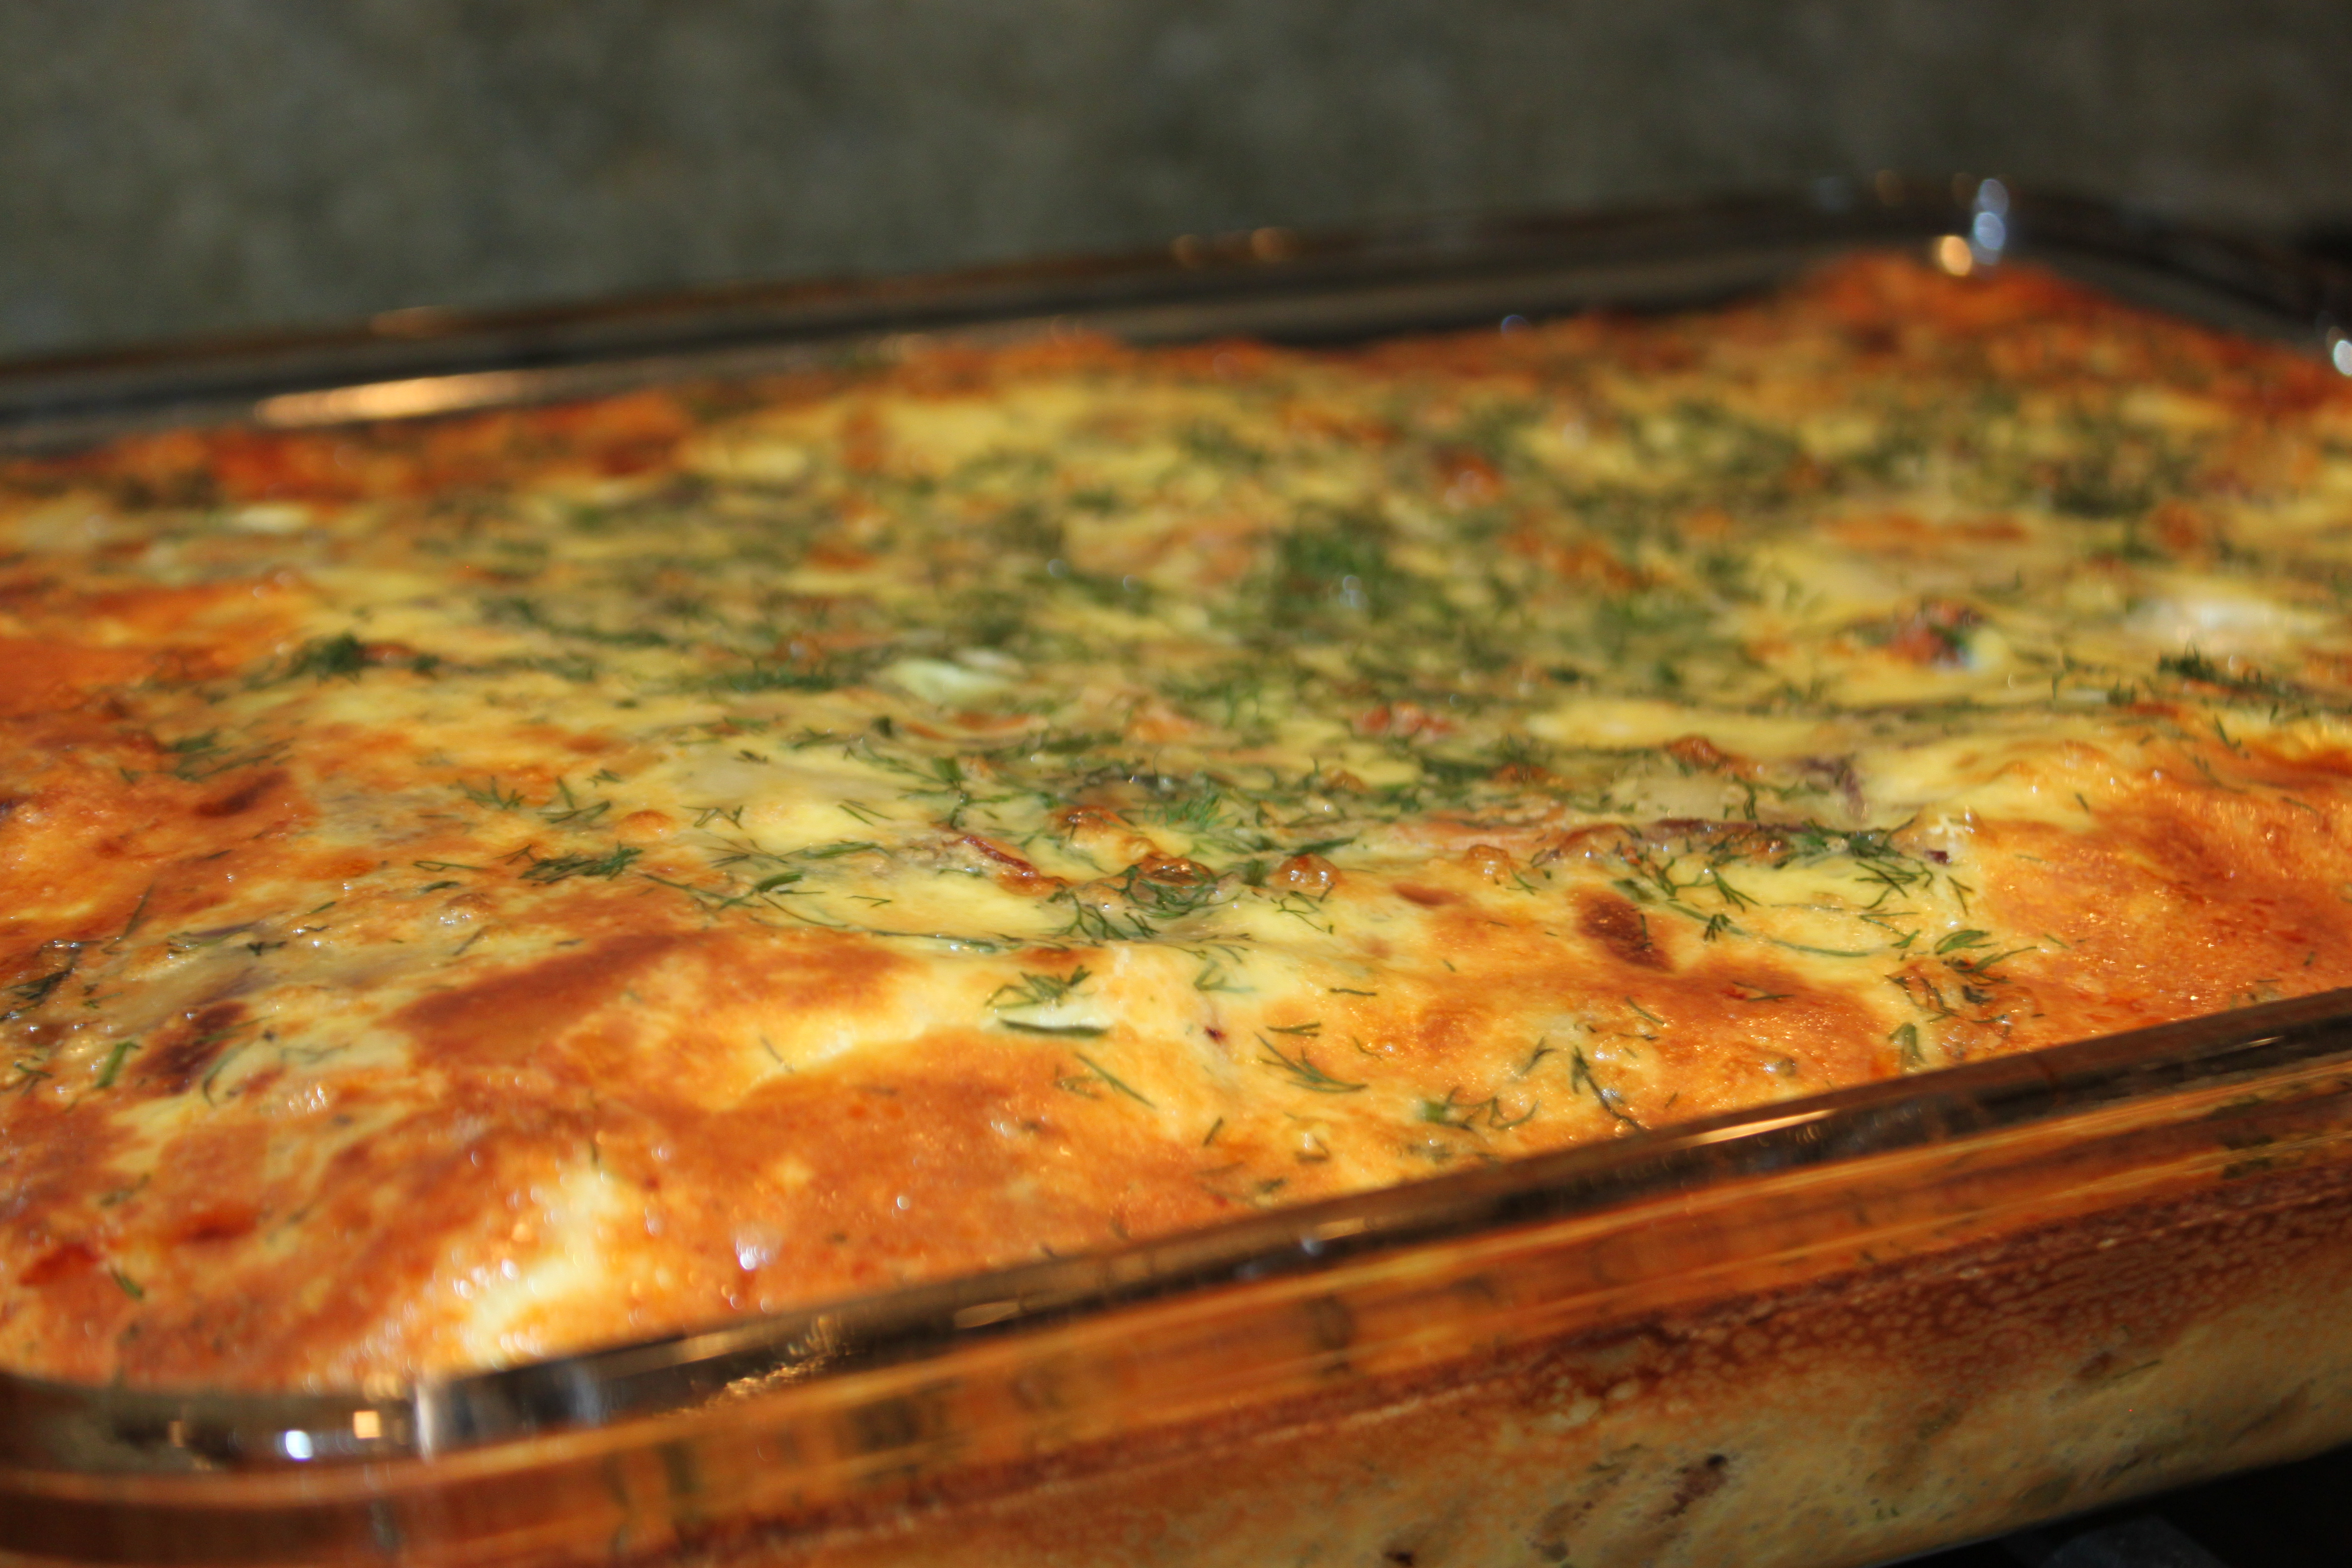 ... yummly egg and cheese breakfast casserole with smoked salmon and leeks